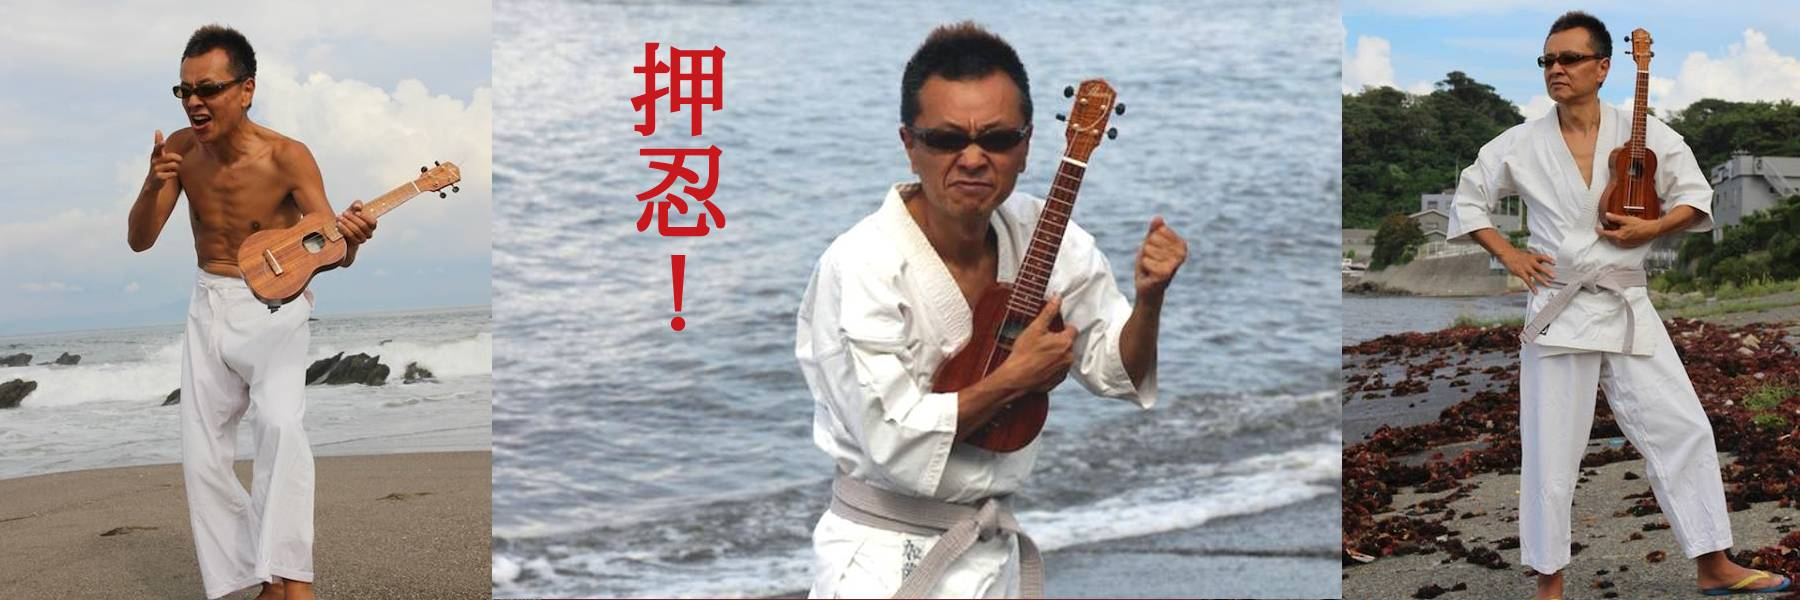 Enjoy IWAO's Super Ukulele Lessons!